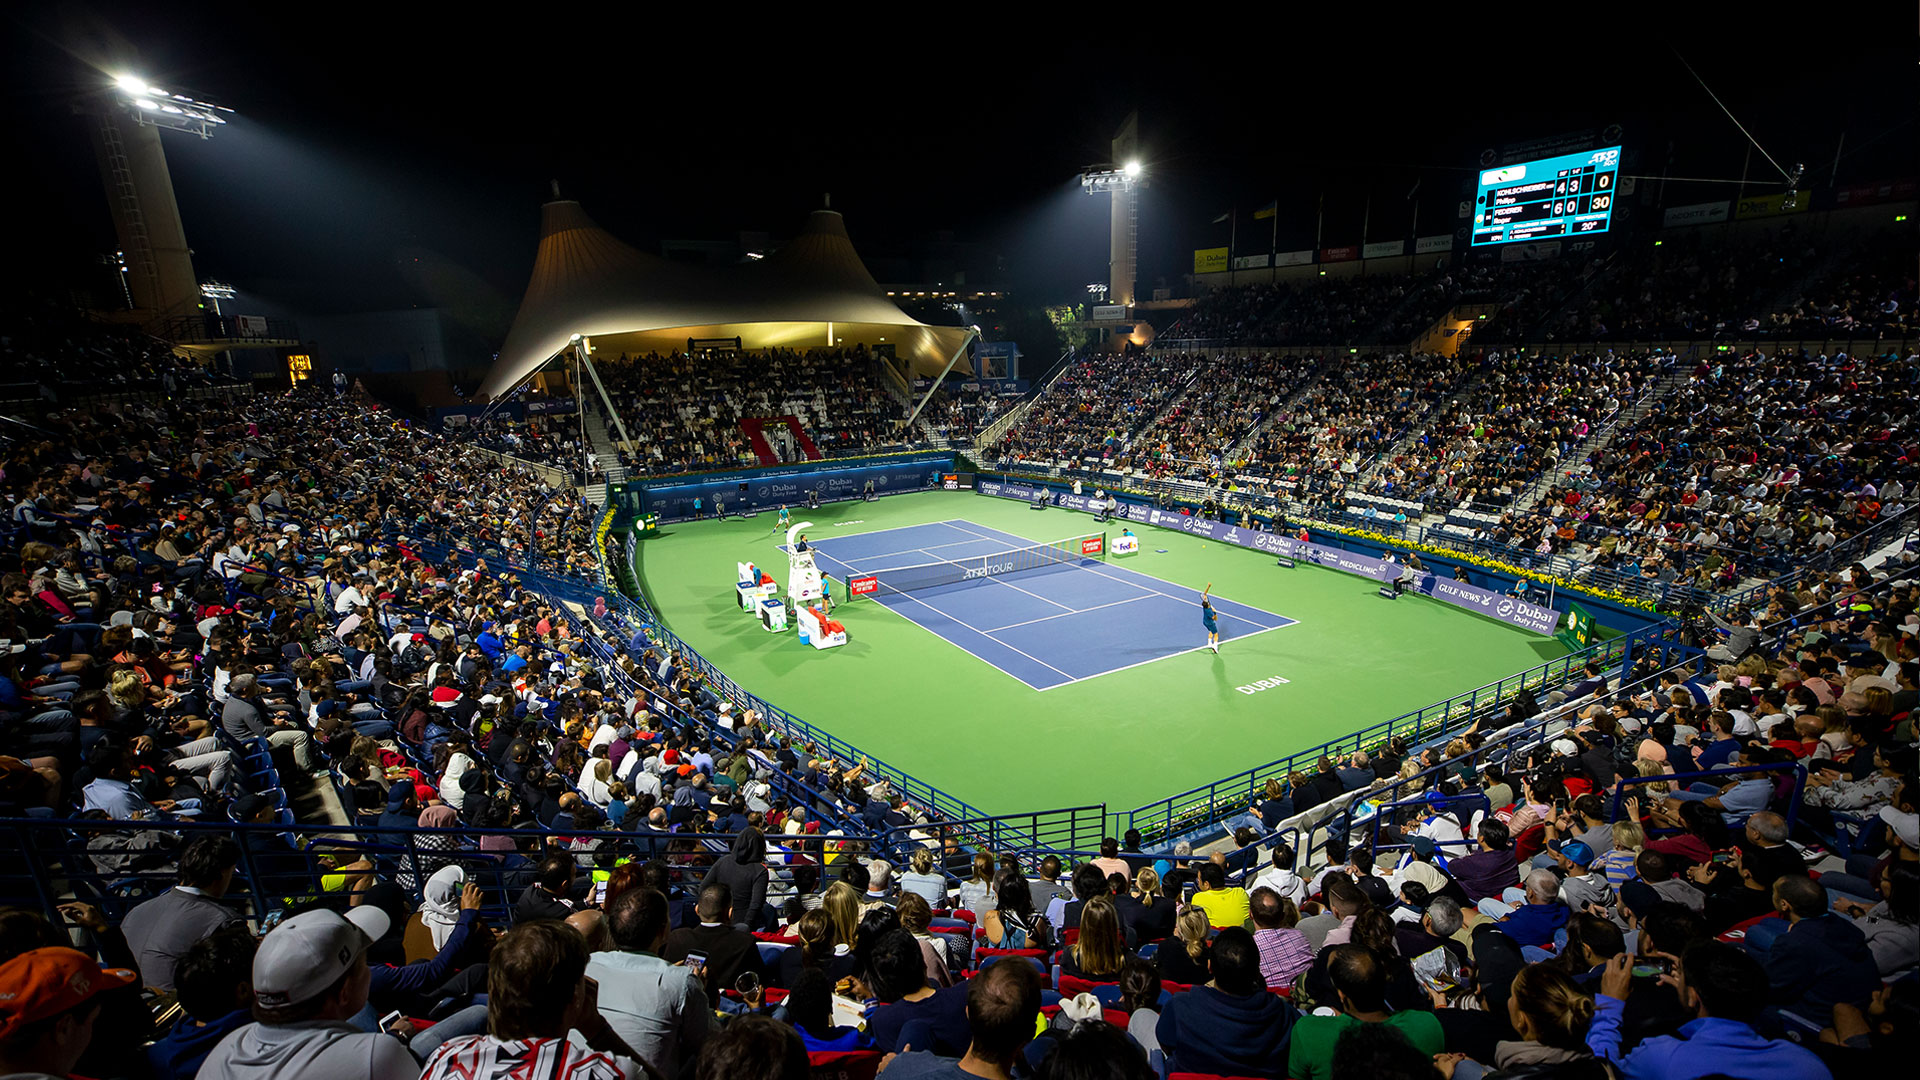 2020 Dubai Duty Free Tennis Championships - 26 February ATP Main Coverage and Highlights